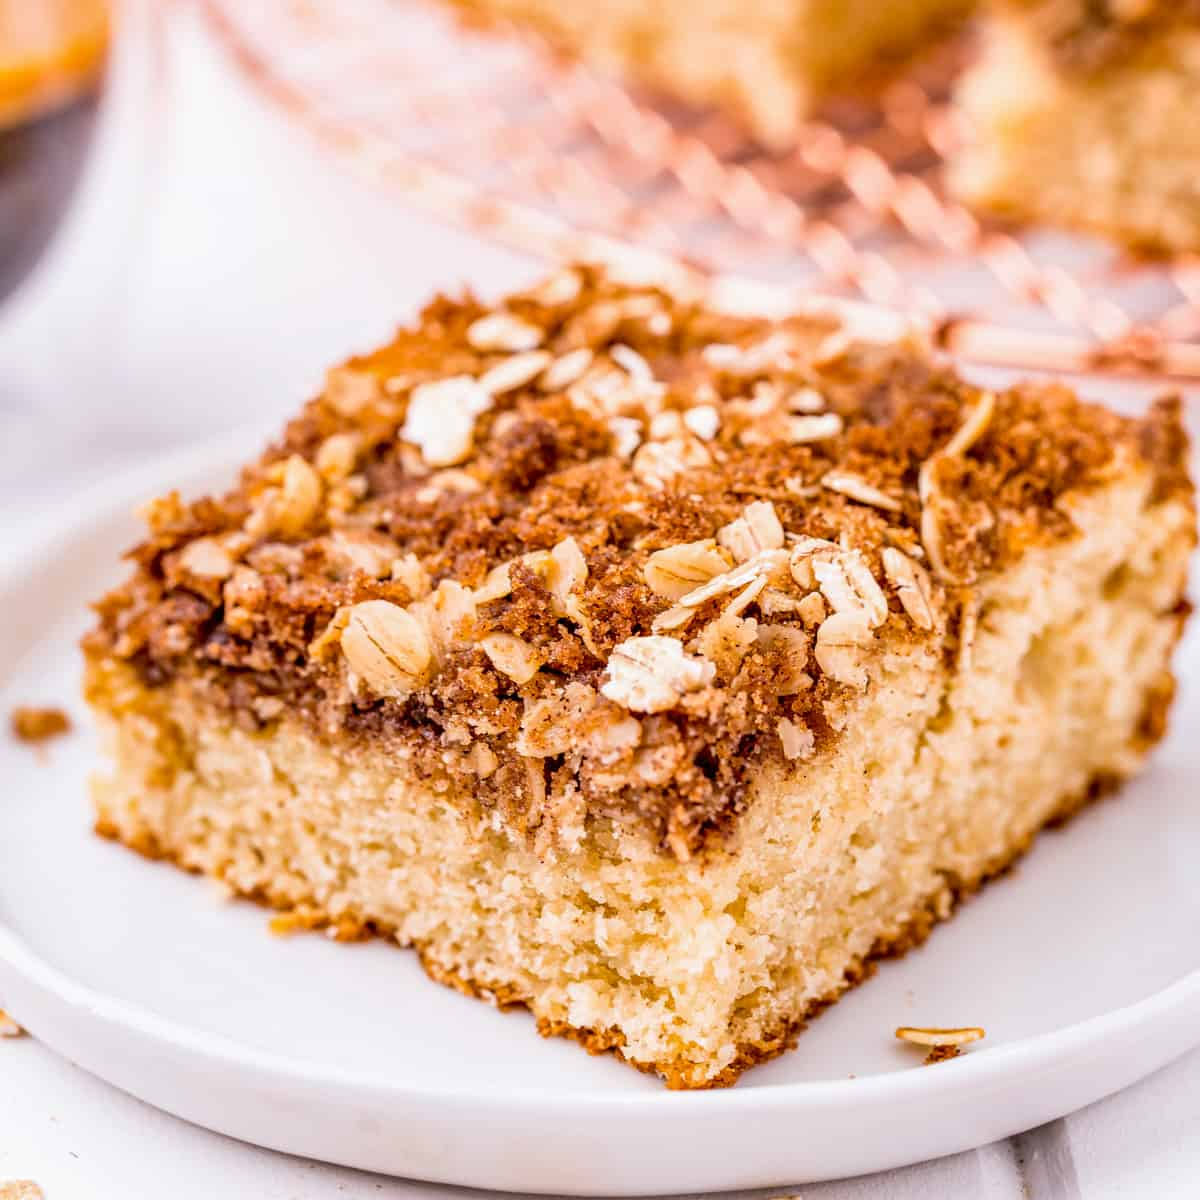 Square image of slice of Coffee Cake on white plate.